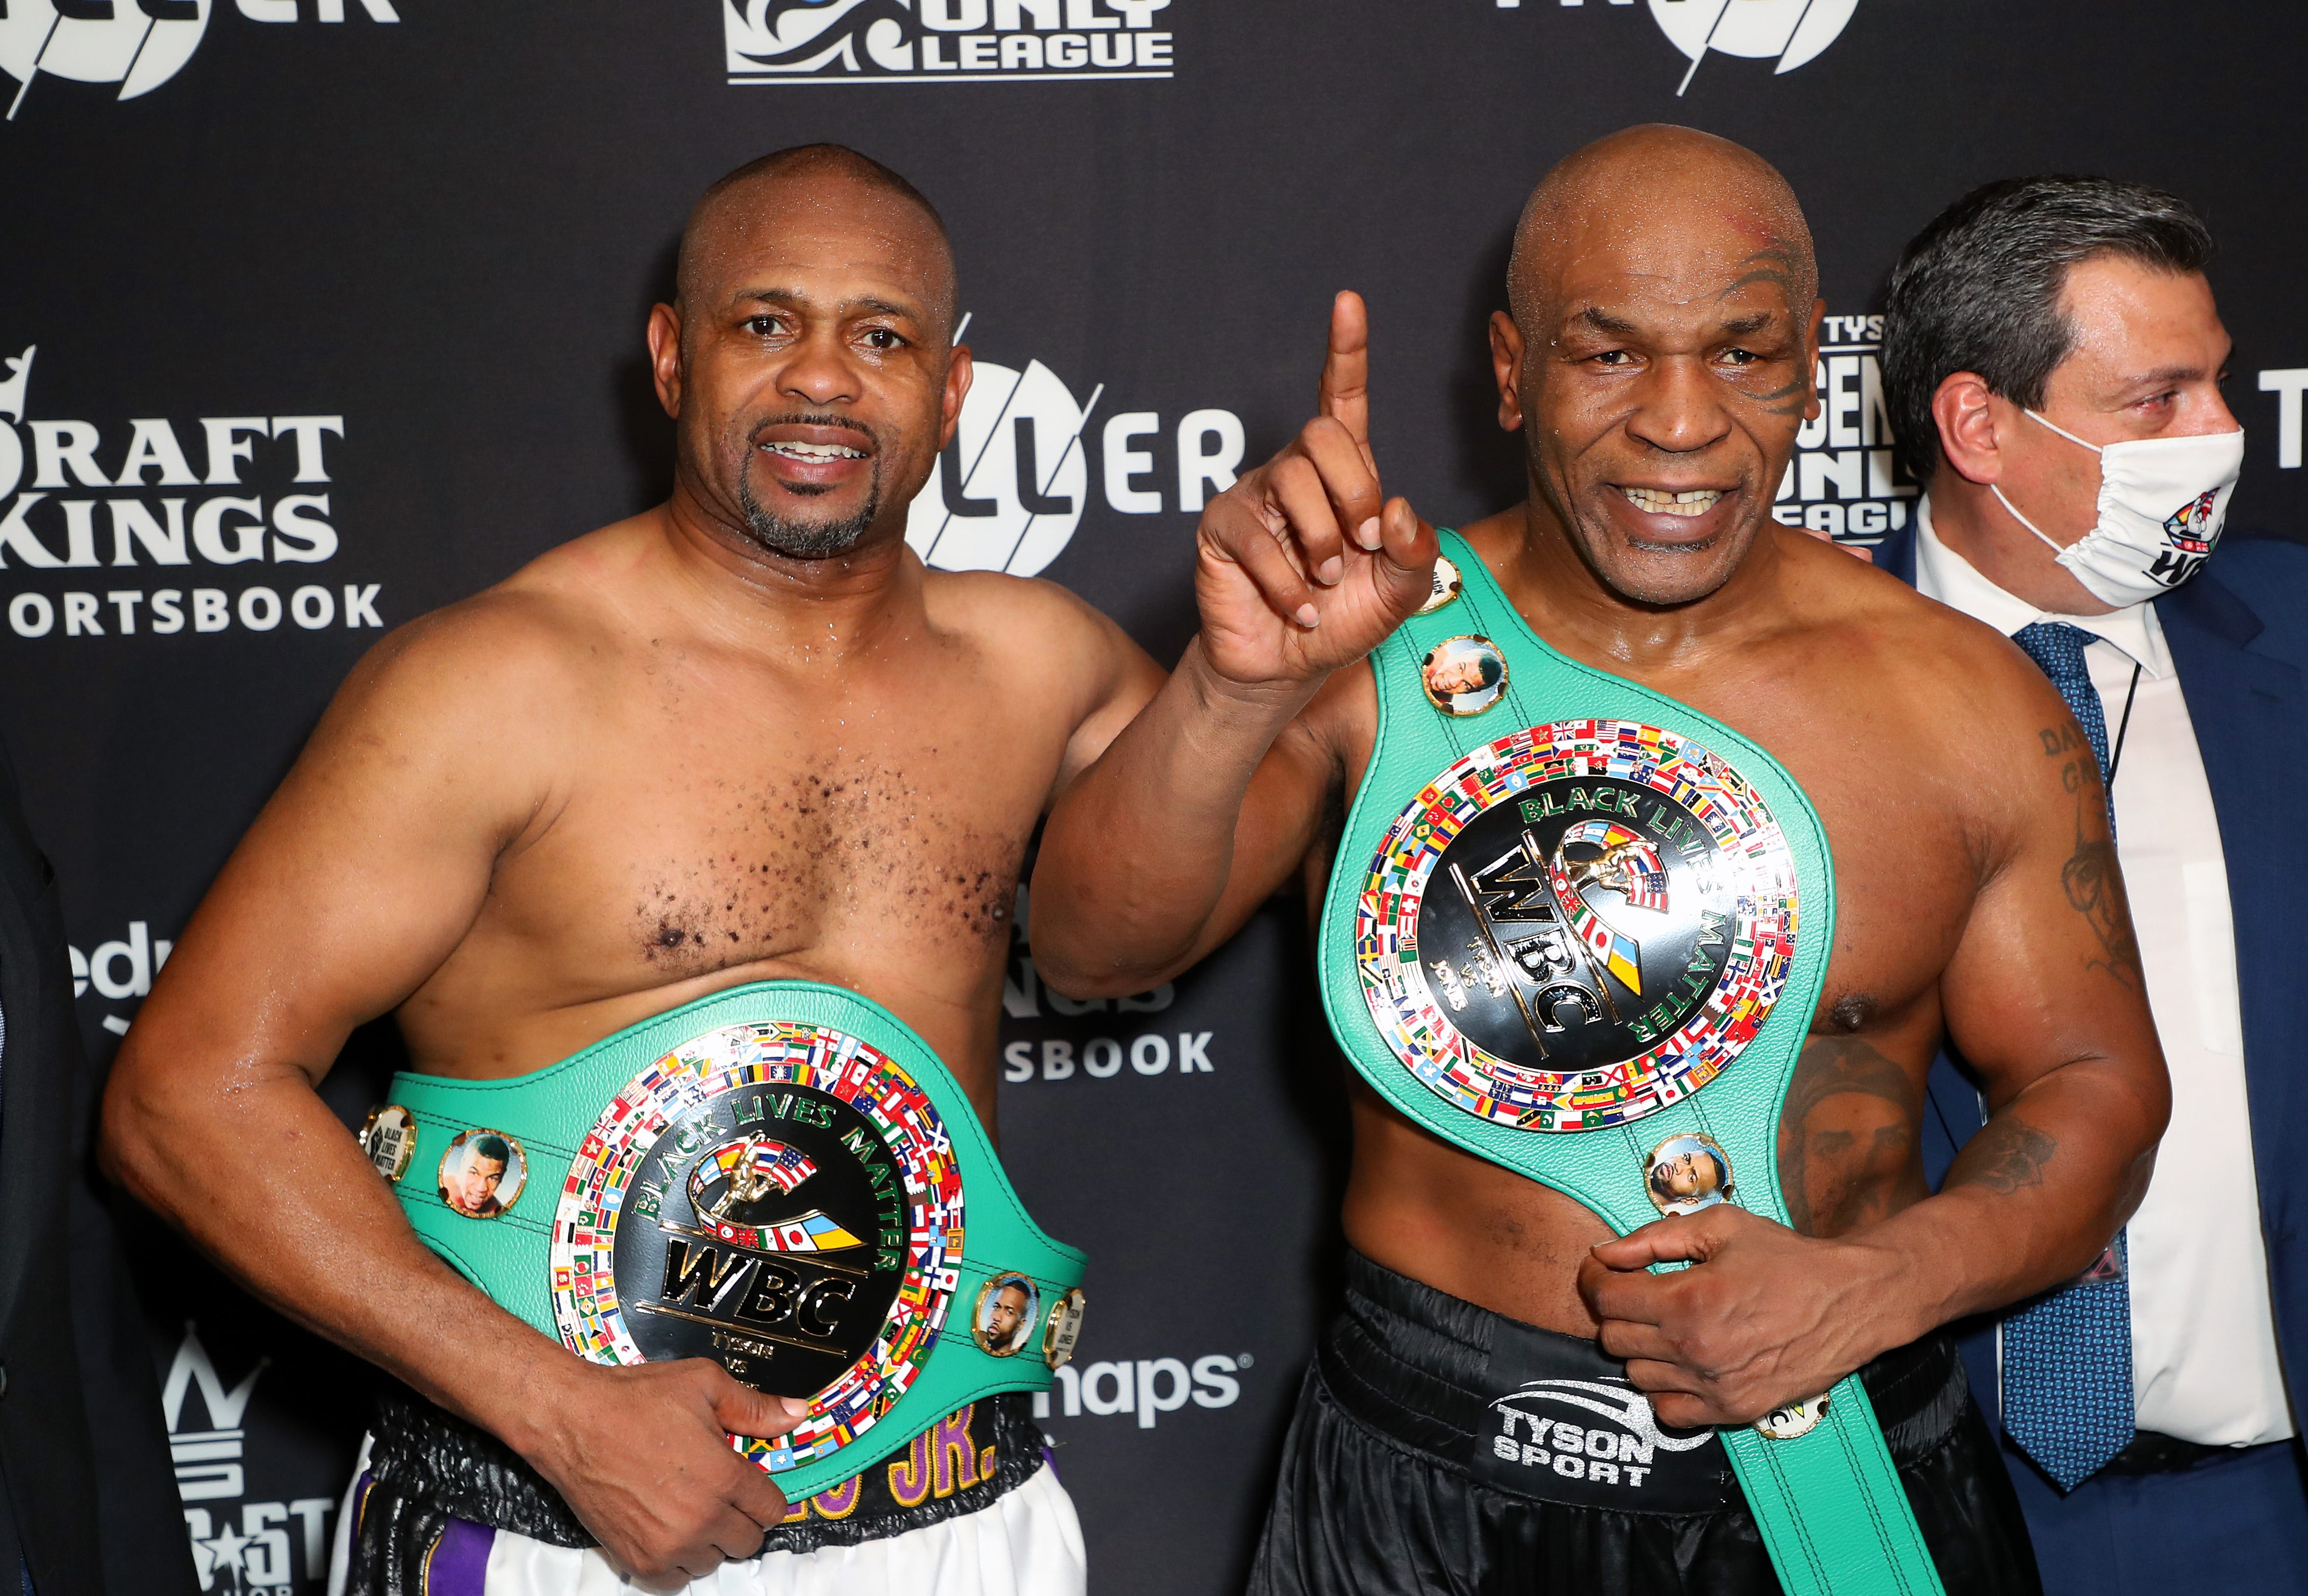 George Foreman envisions path for 54-year-old Mike Tyson to get heavyweight title shot; others are not convinced